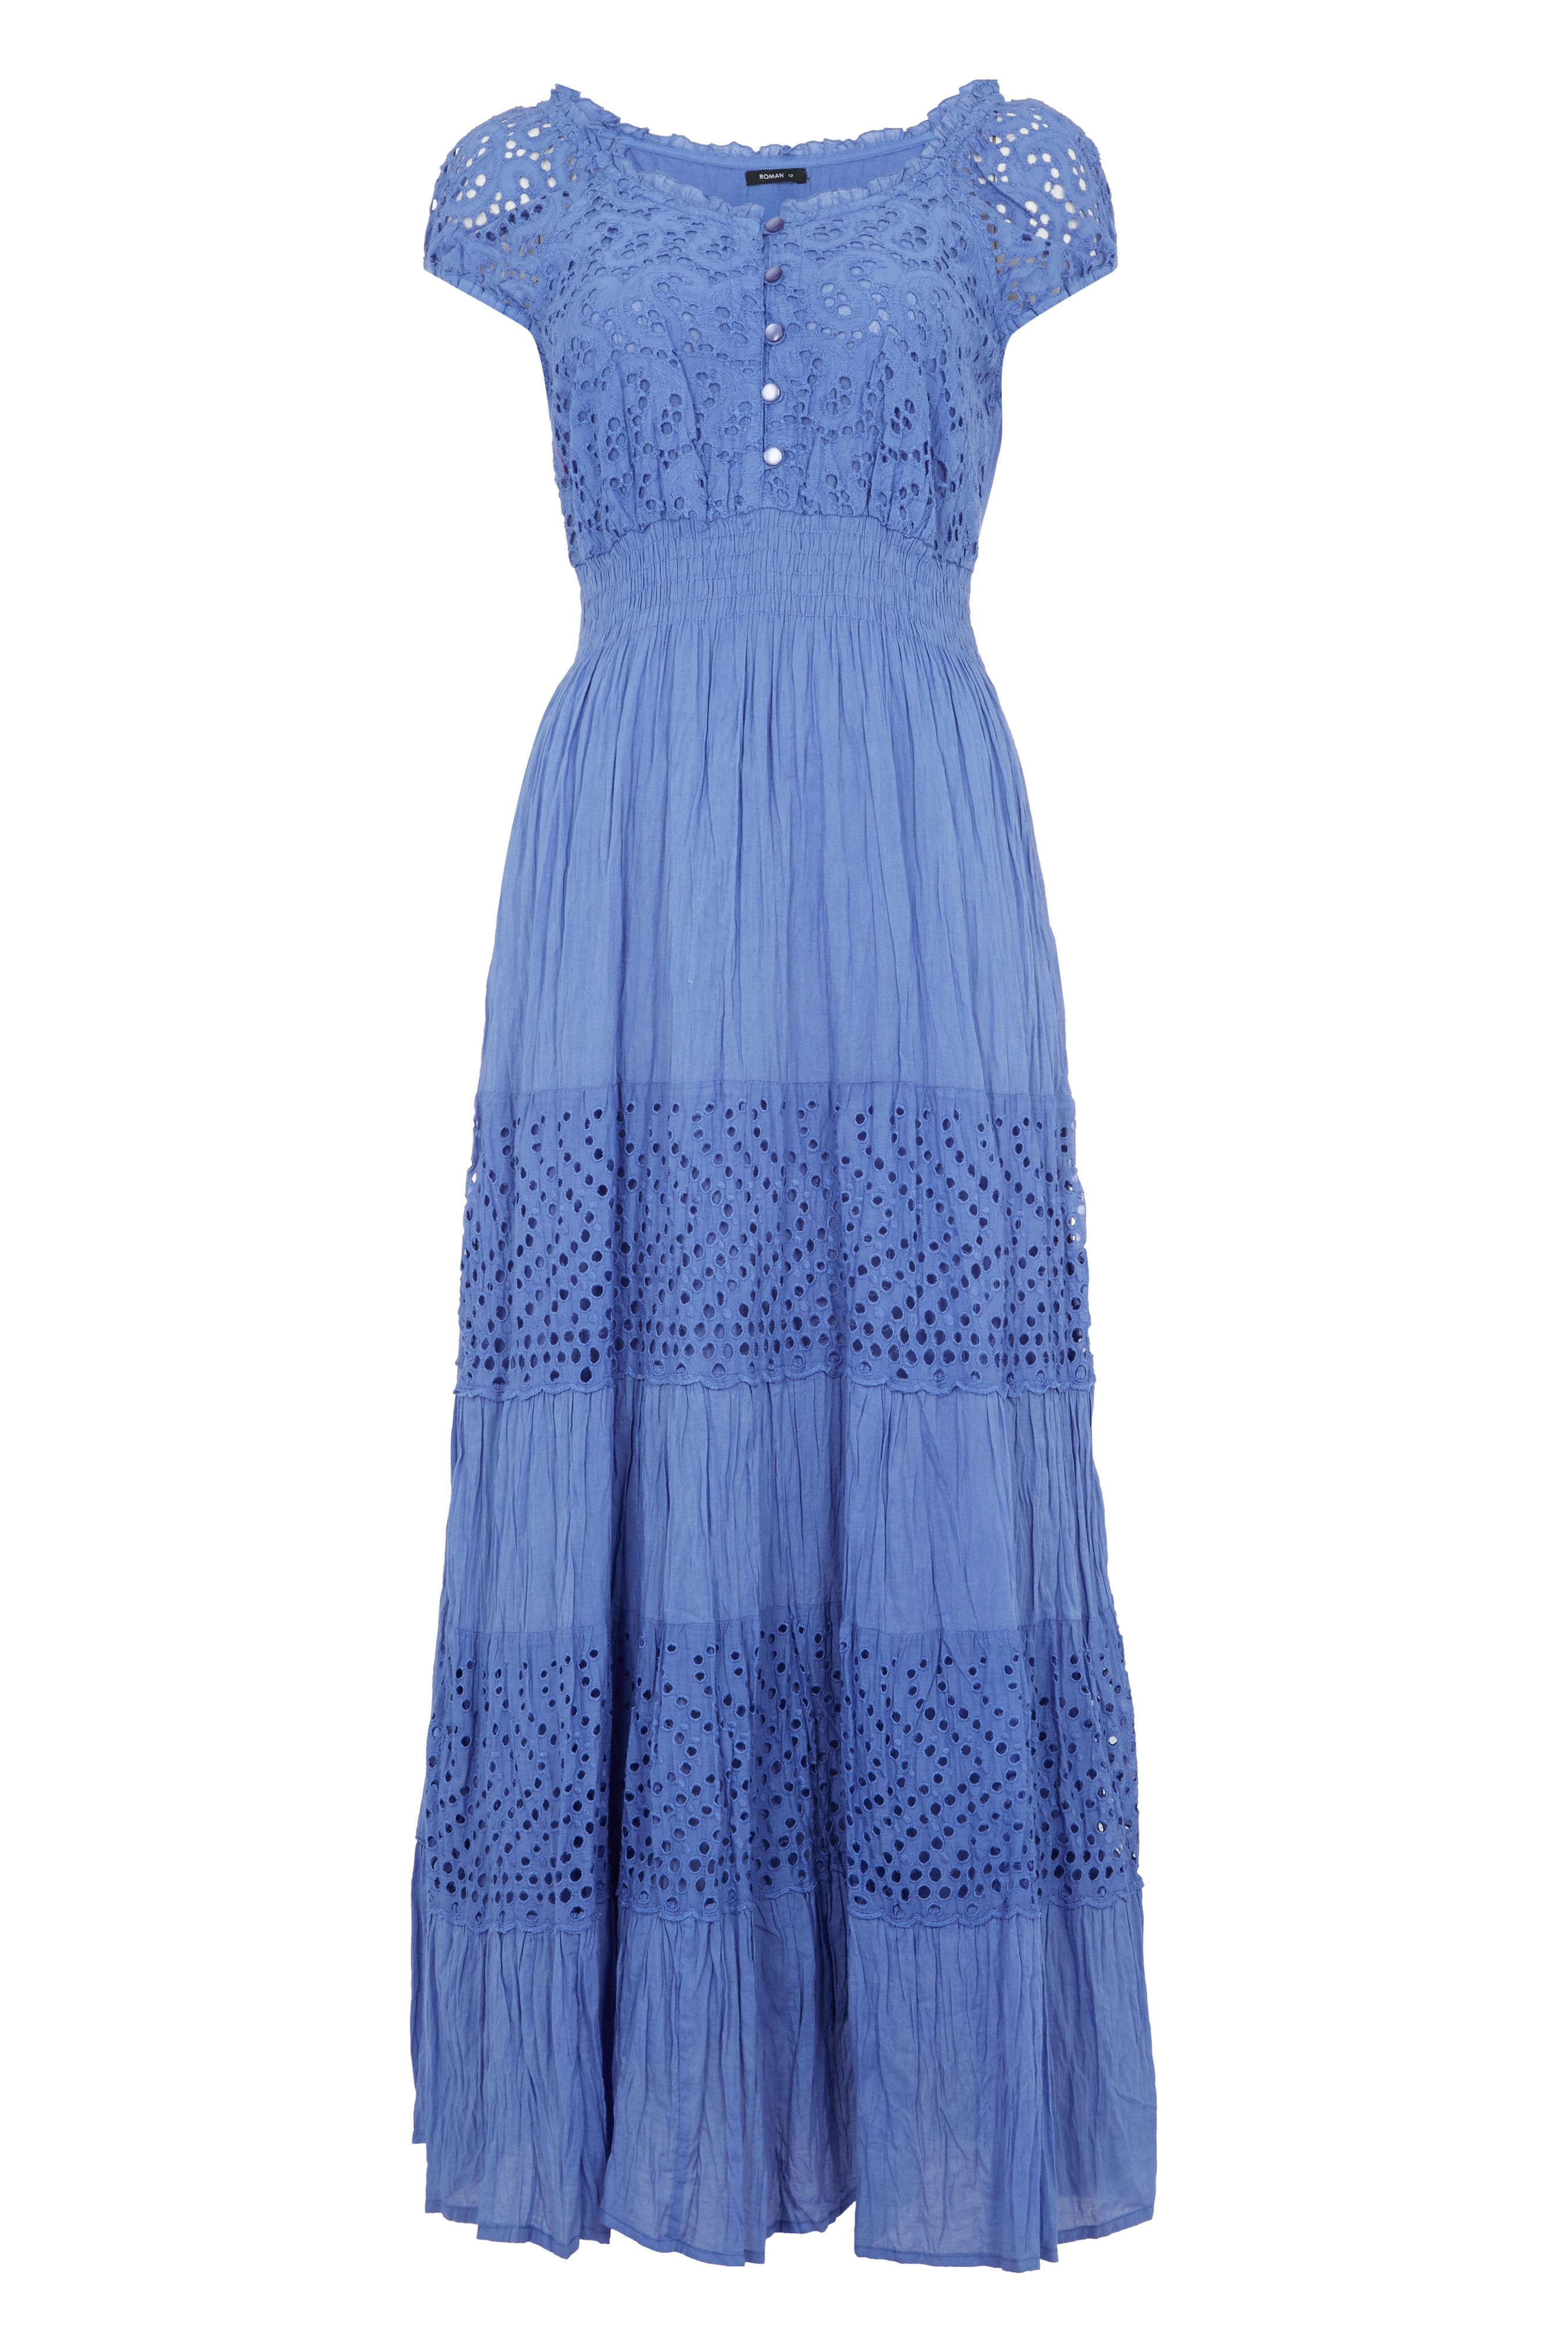 Roman Originals Lace Cotton Midi Dress, Sky Blue